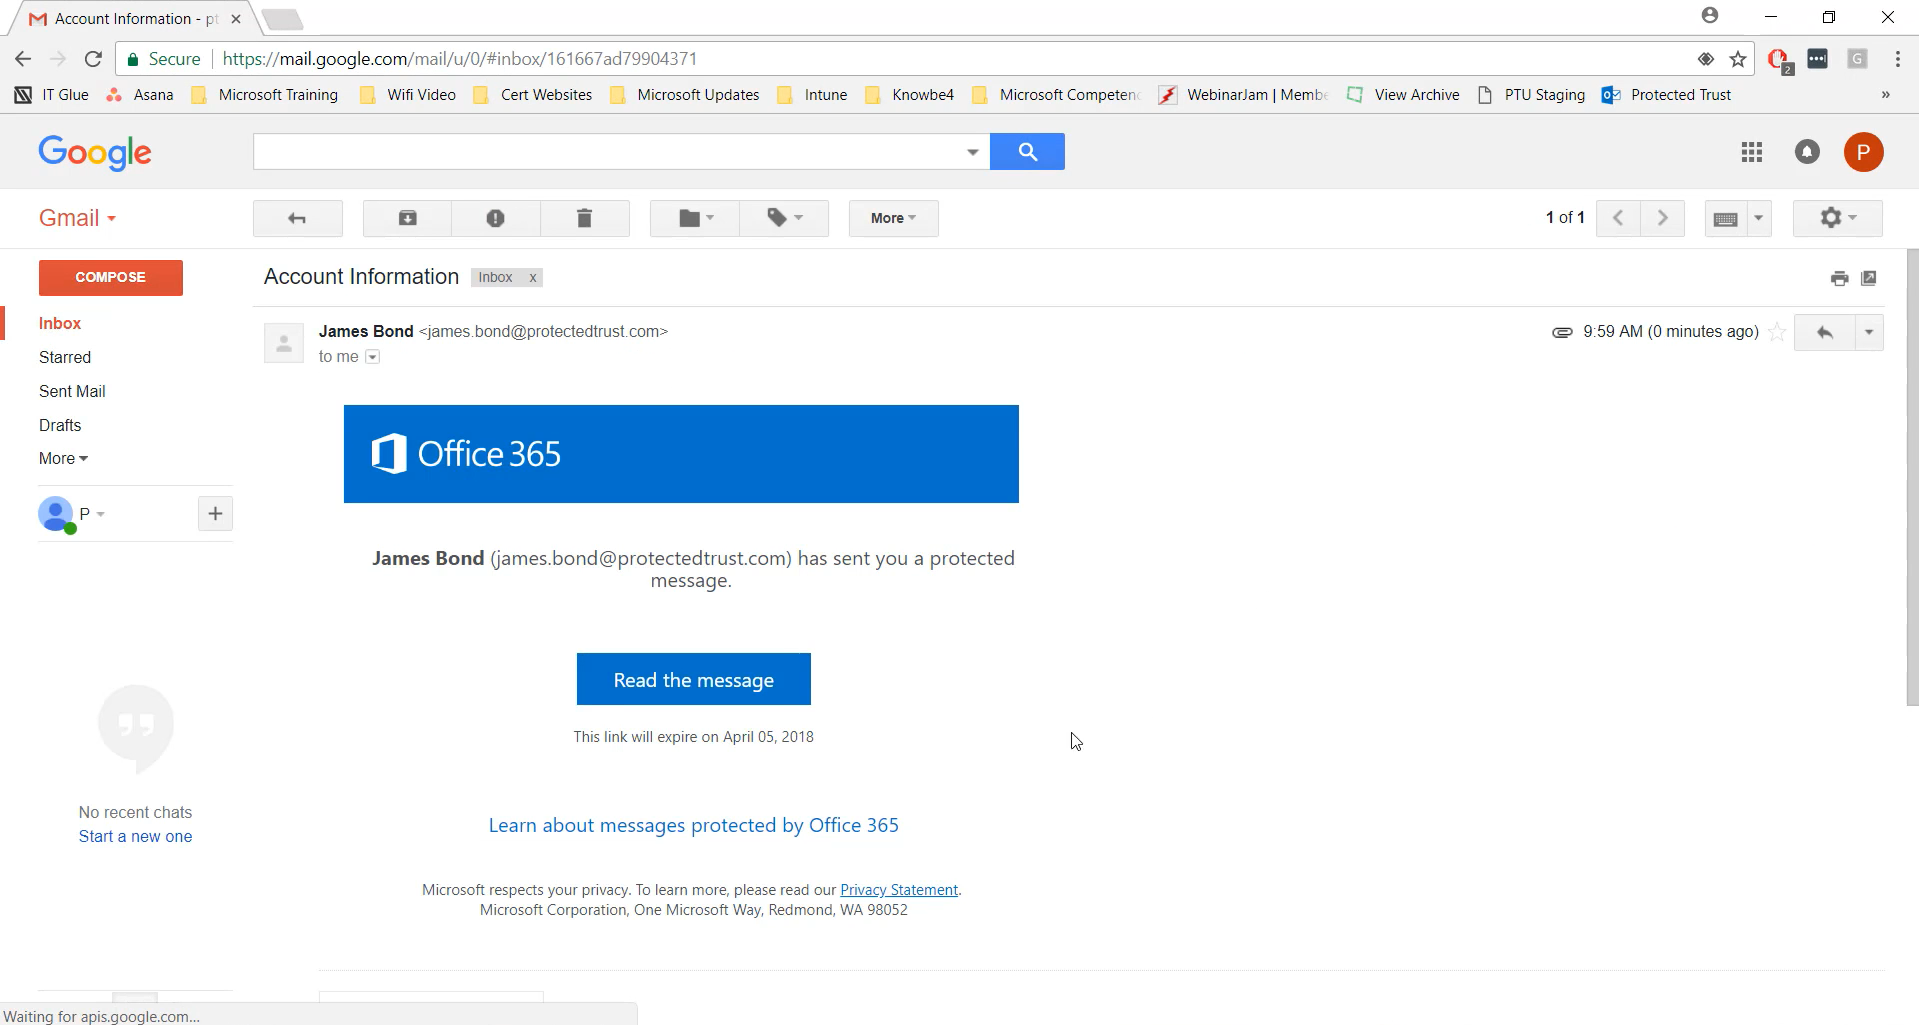 Viewing an encrypted email outside of O365